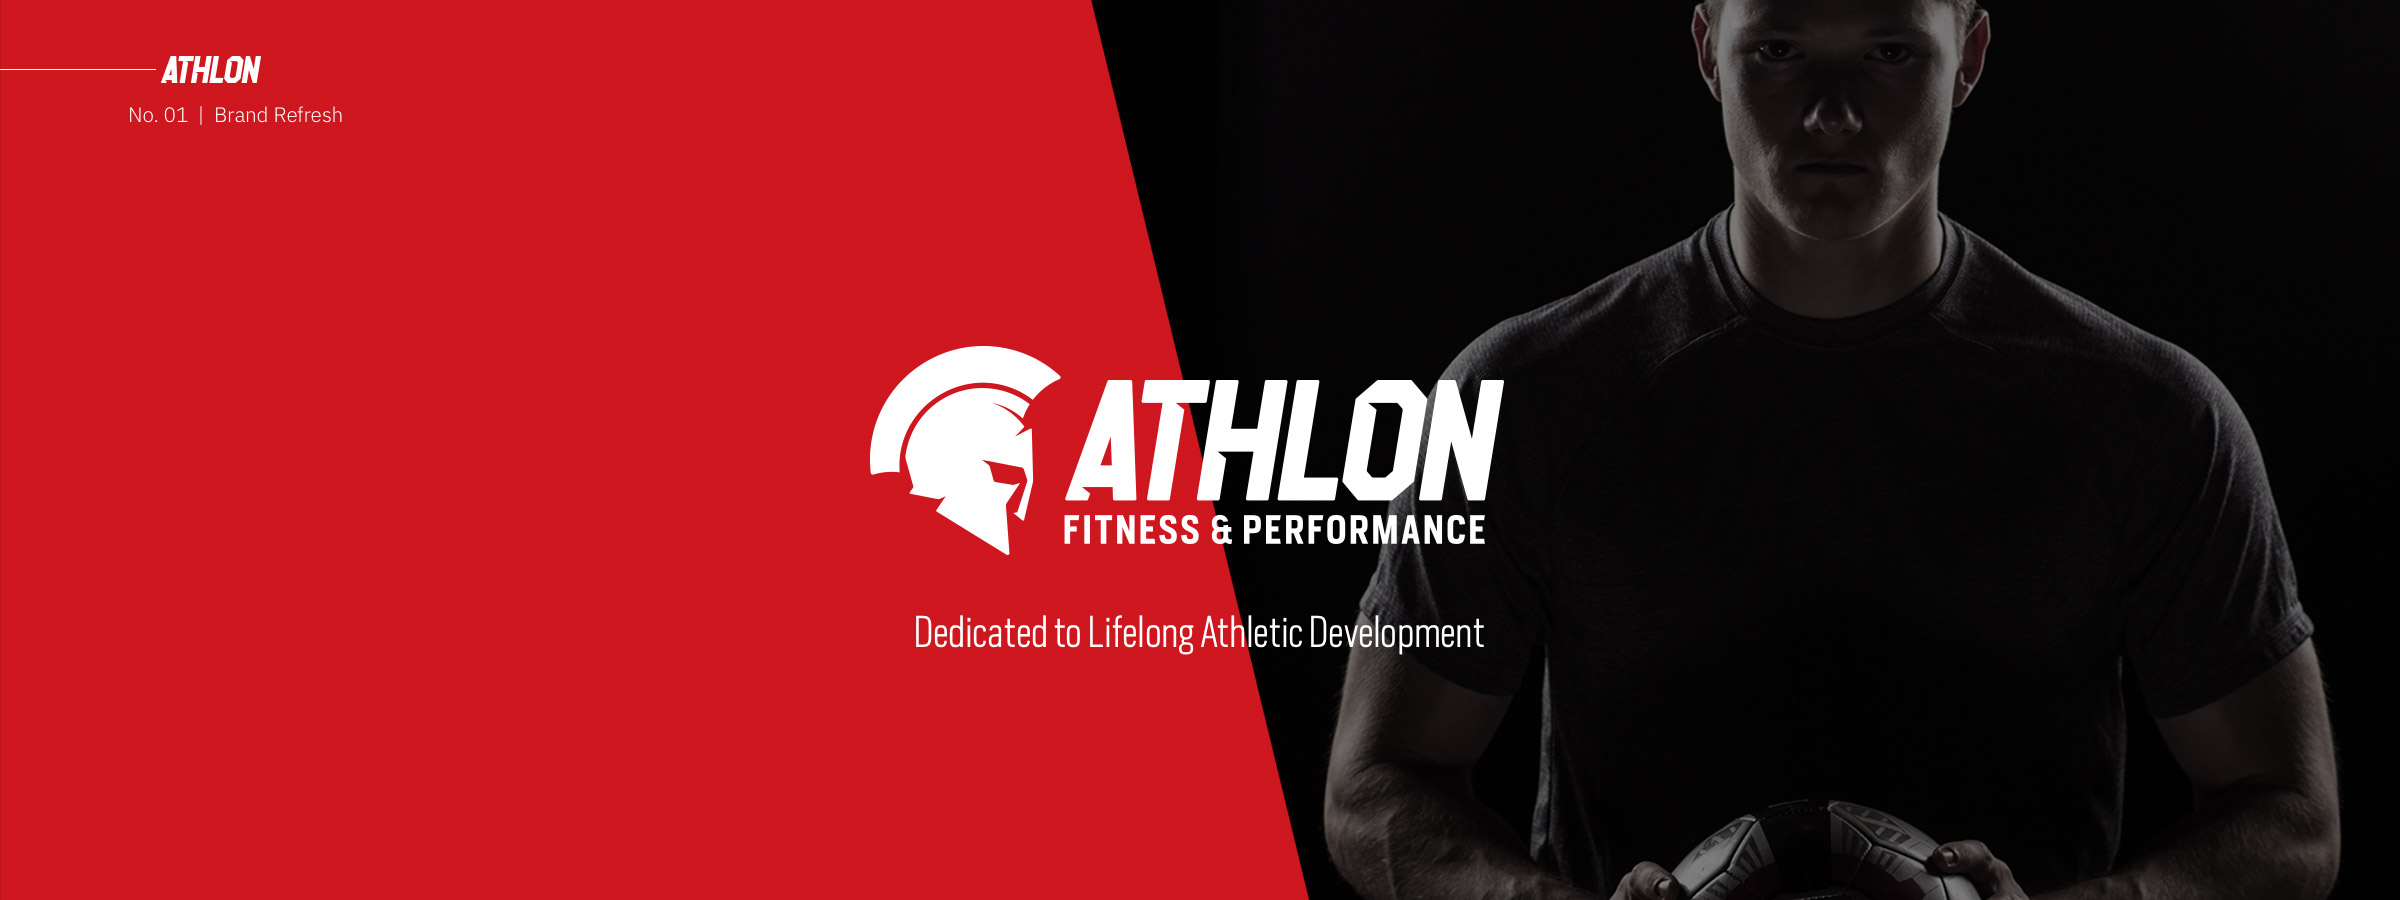 Athlon-Brand-Refresh-01-Full-Logo